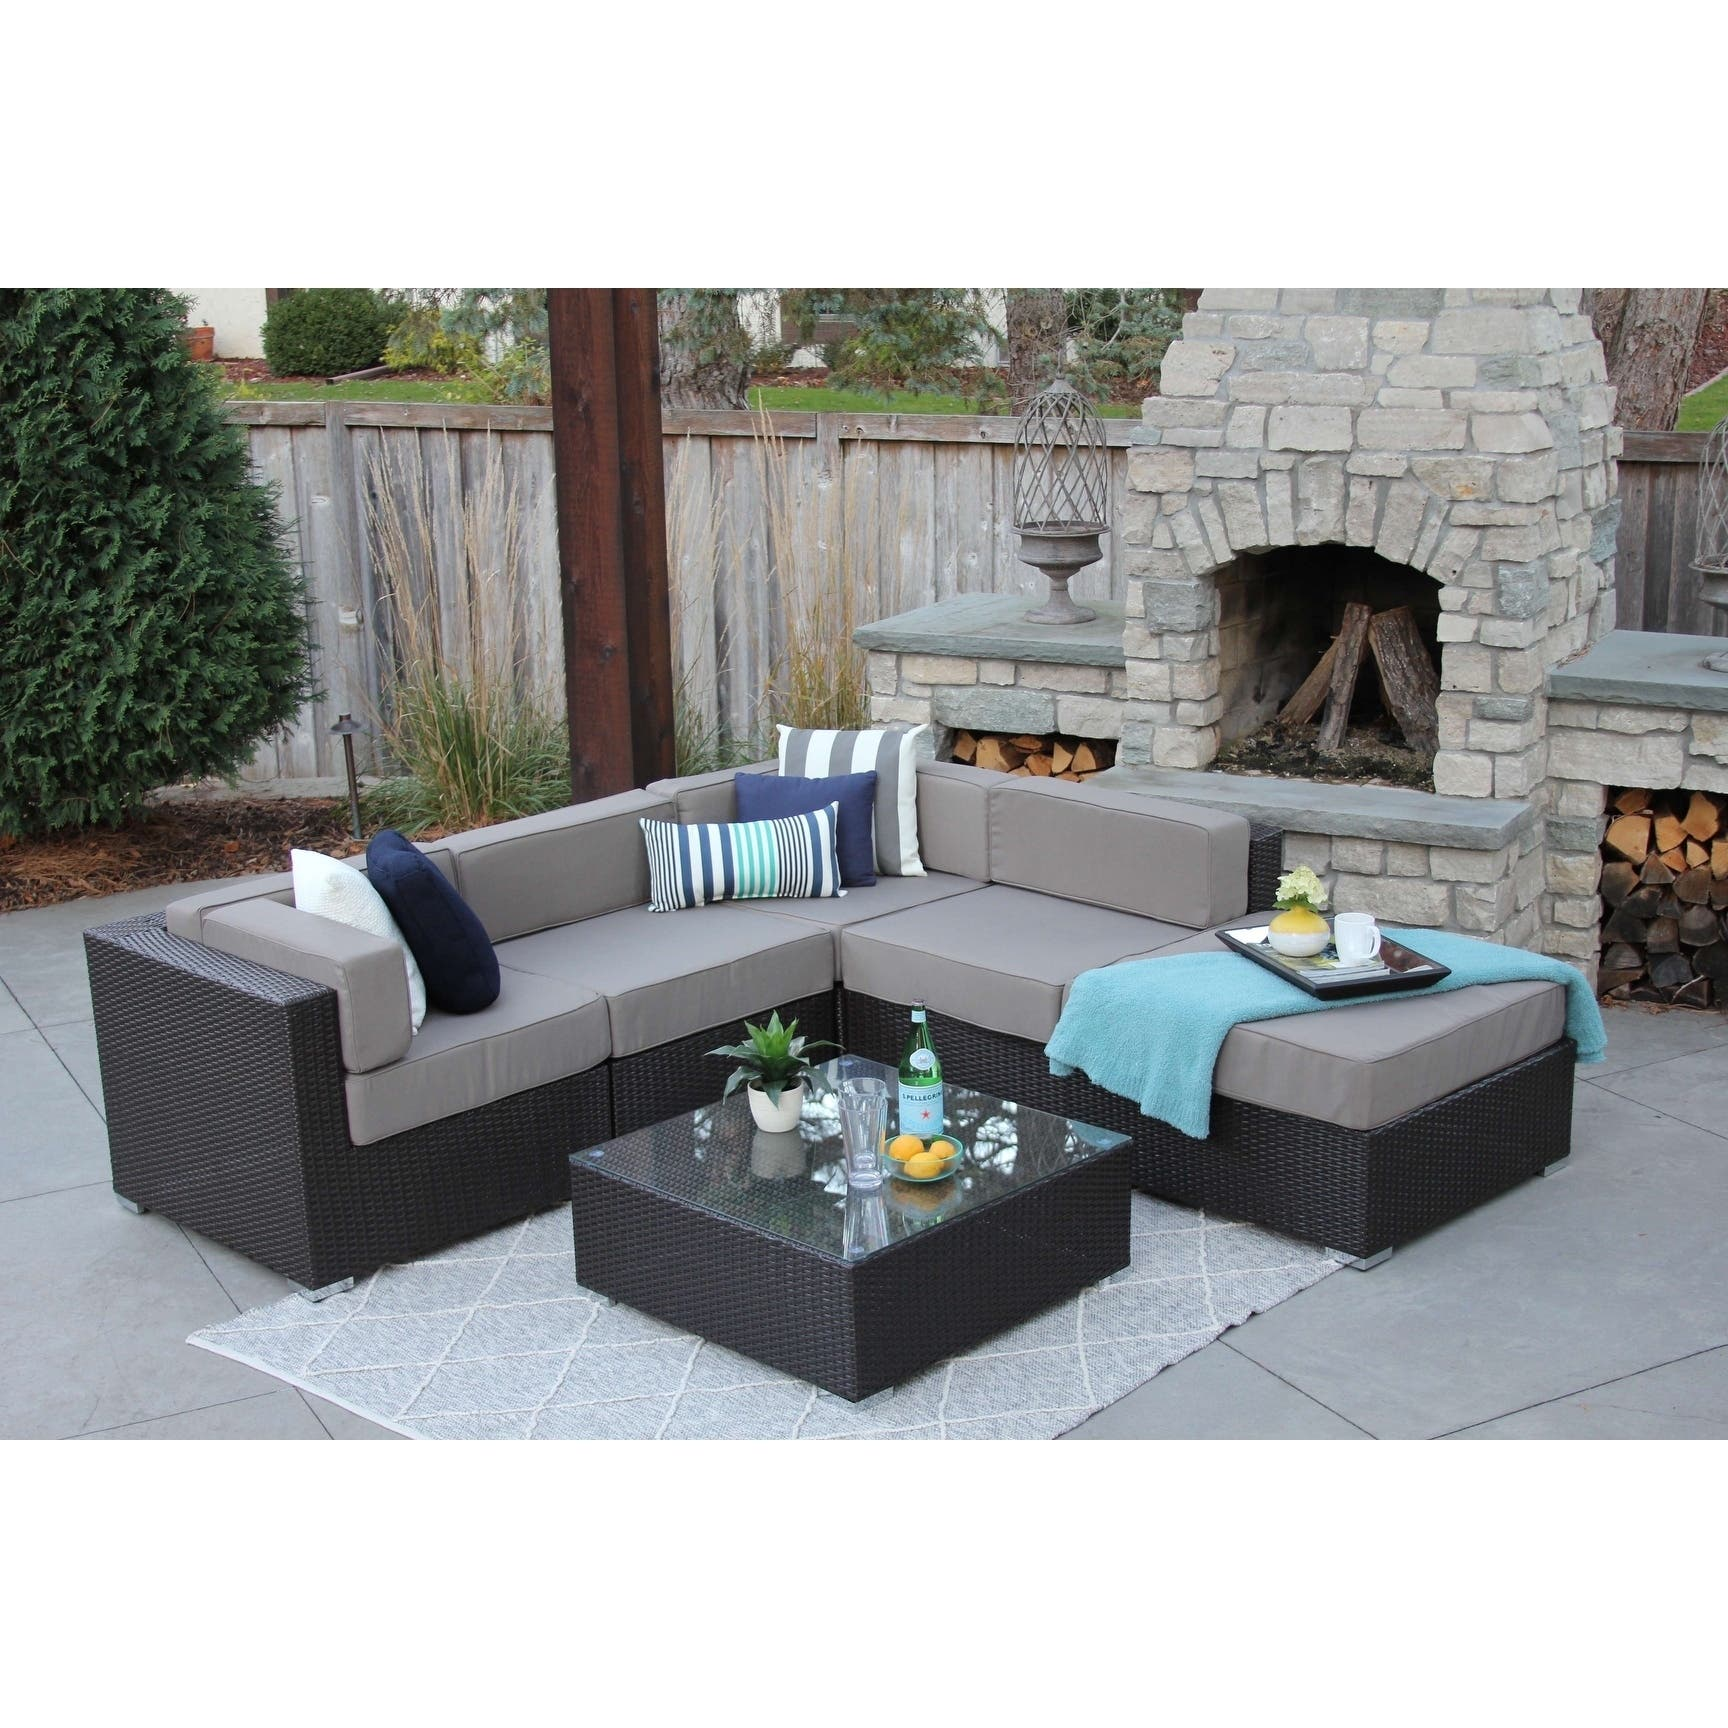 Outdoor sofas chairs sectionals for less for Outdoor furniture 0 finance